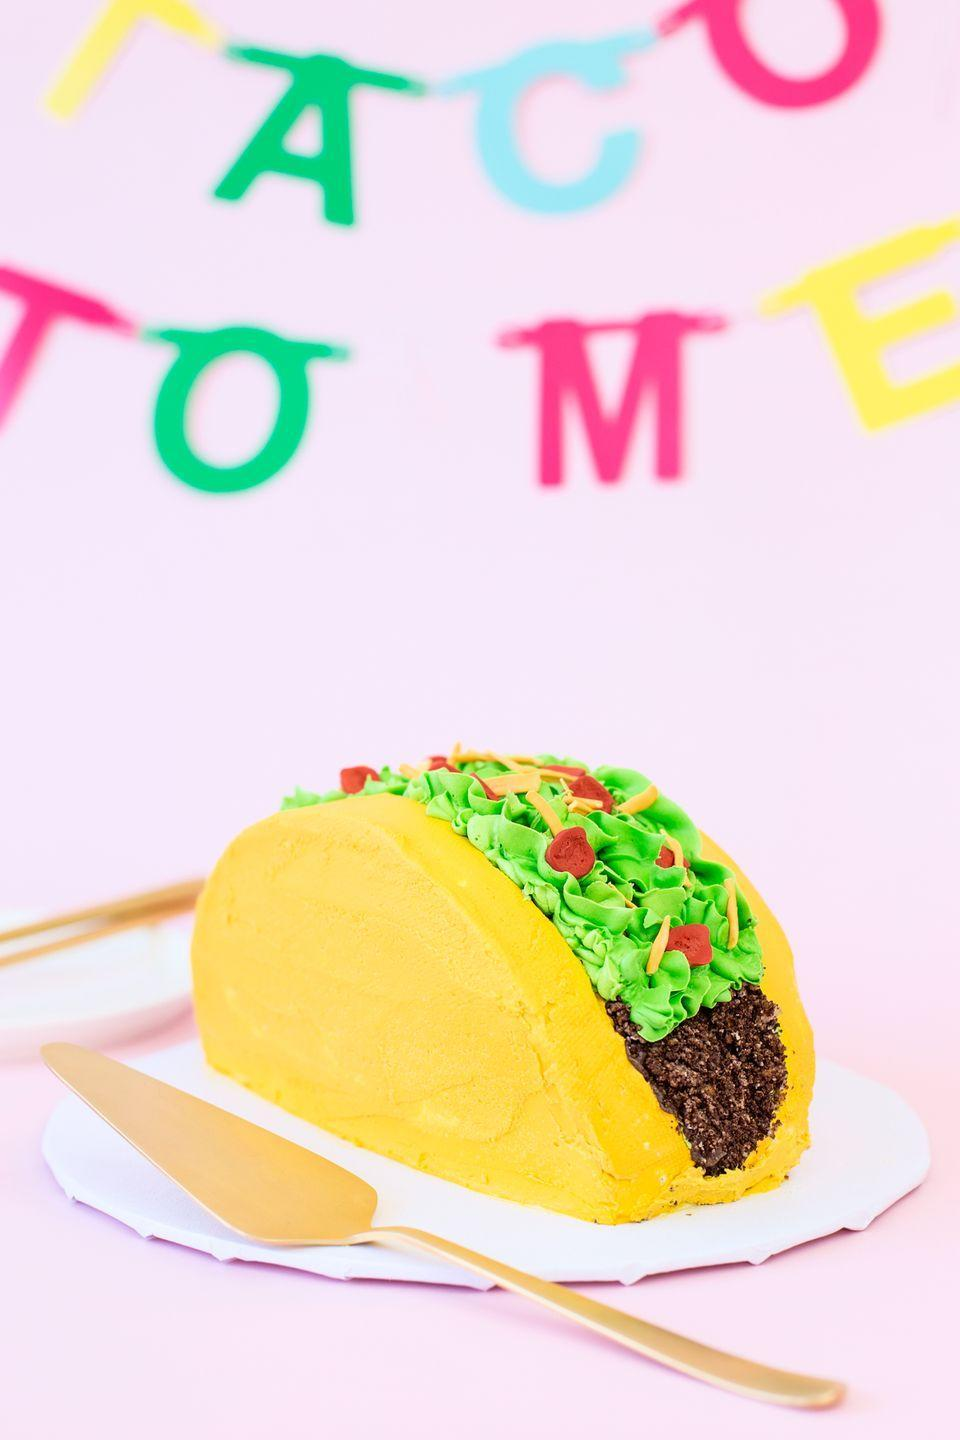 "<p>Whether it's Taco Tuesday or any other day of the week, having a fun fiesta with a taco bar is sure to be a crowd-pleaser. And just wait until you see their faces when this taco cake rolls out!</p><p><strong>Get the re</strong><strong>cipe from <a href=""https://studiodiy.com/diy-taco-cake/"" rel=""nofollow noopener"" target=""_blank"" data-ylk=""slk:Studio DIY!"" class=""link rapid-noclick-resp"">Studio DIY!</a></strong></p><p><a class=""link rapid-noclick-resp"" href=""https://go.redirectingat.com?id=74968X1596630&url=https%3A%2F%2Fwww.walmart.com%2Fip%2FTaco-Bar-Gold-Glitter-Banner-Sign-Garland-Pre-Strung-for-Cinco-De-Mayo-Mexican-Fiesta-Themed-Party-Taco-Bar-Decor%2F249952900&sref=https%3A%2F%2Fwww.thepioneerwoman.com%2Fhome-lifestyle%2Fentertaining%2Fg34192298%2F50th-birthday-party-ideas%2F"" rel=""nofollow noopener"" target=""_blank"" data-ylk=""slk:SHOP TACO BAR BANNER"">SHOP TACO BAR BANNER</a></p>"